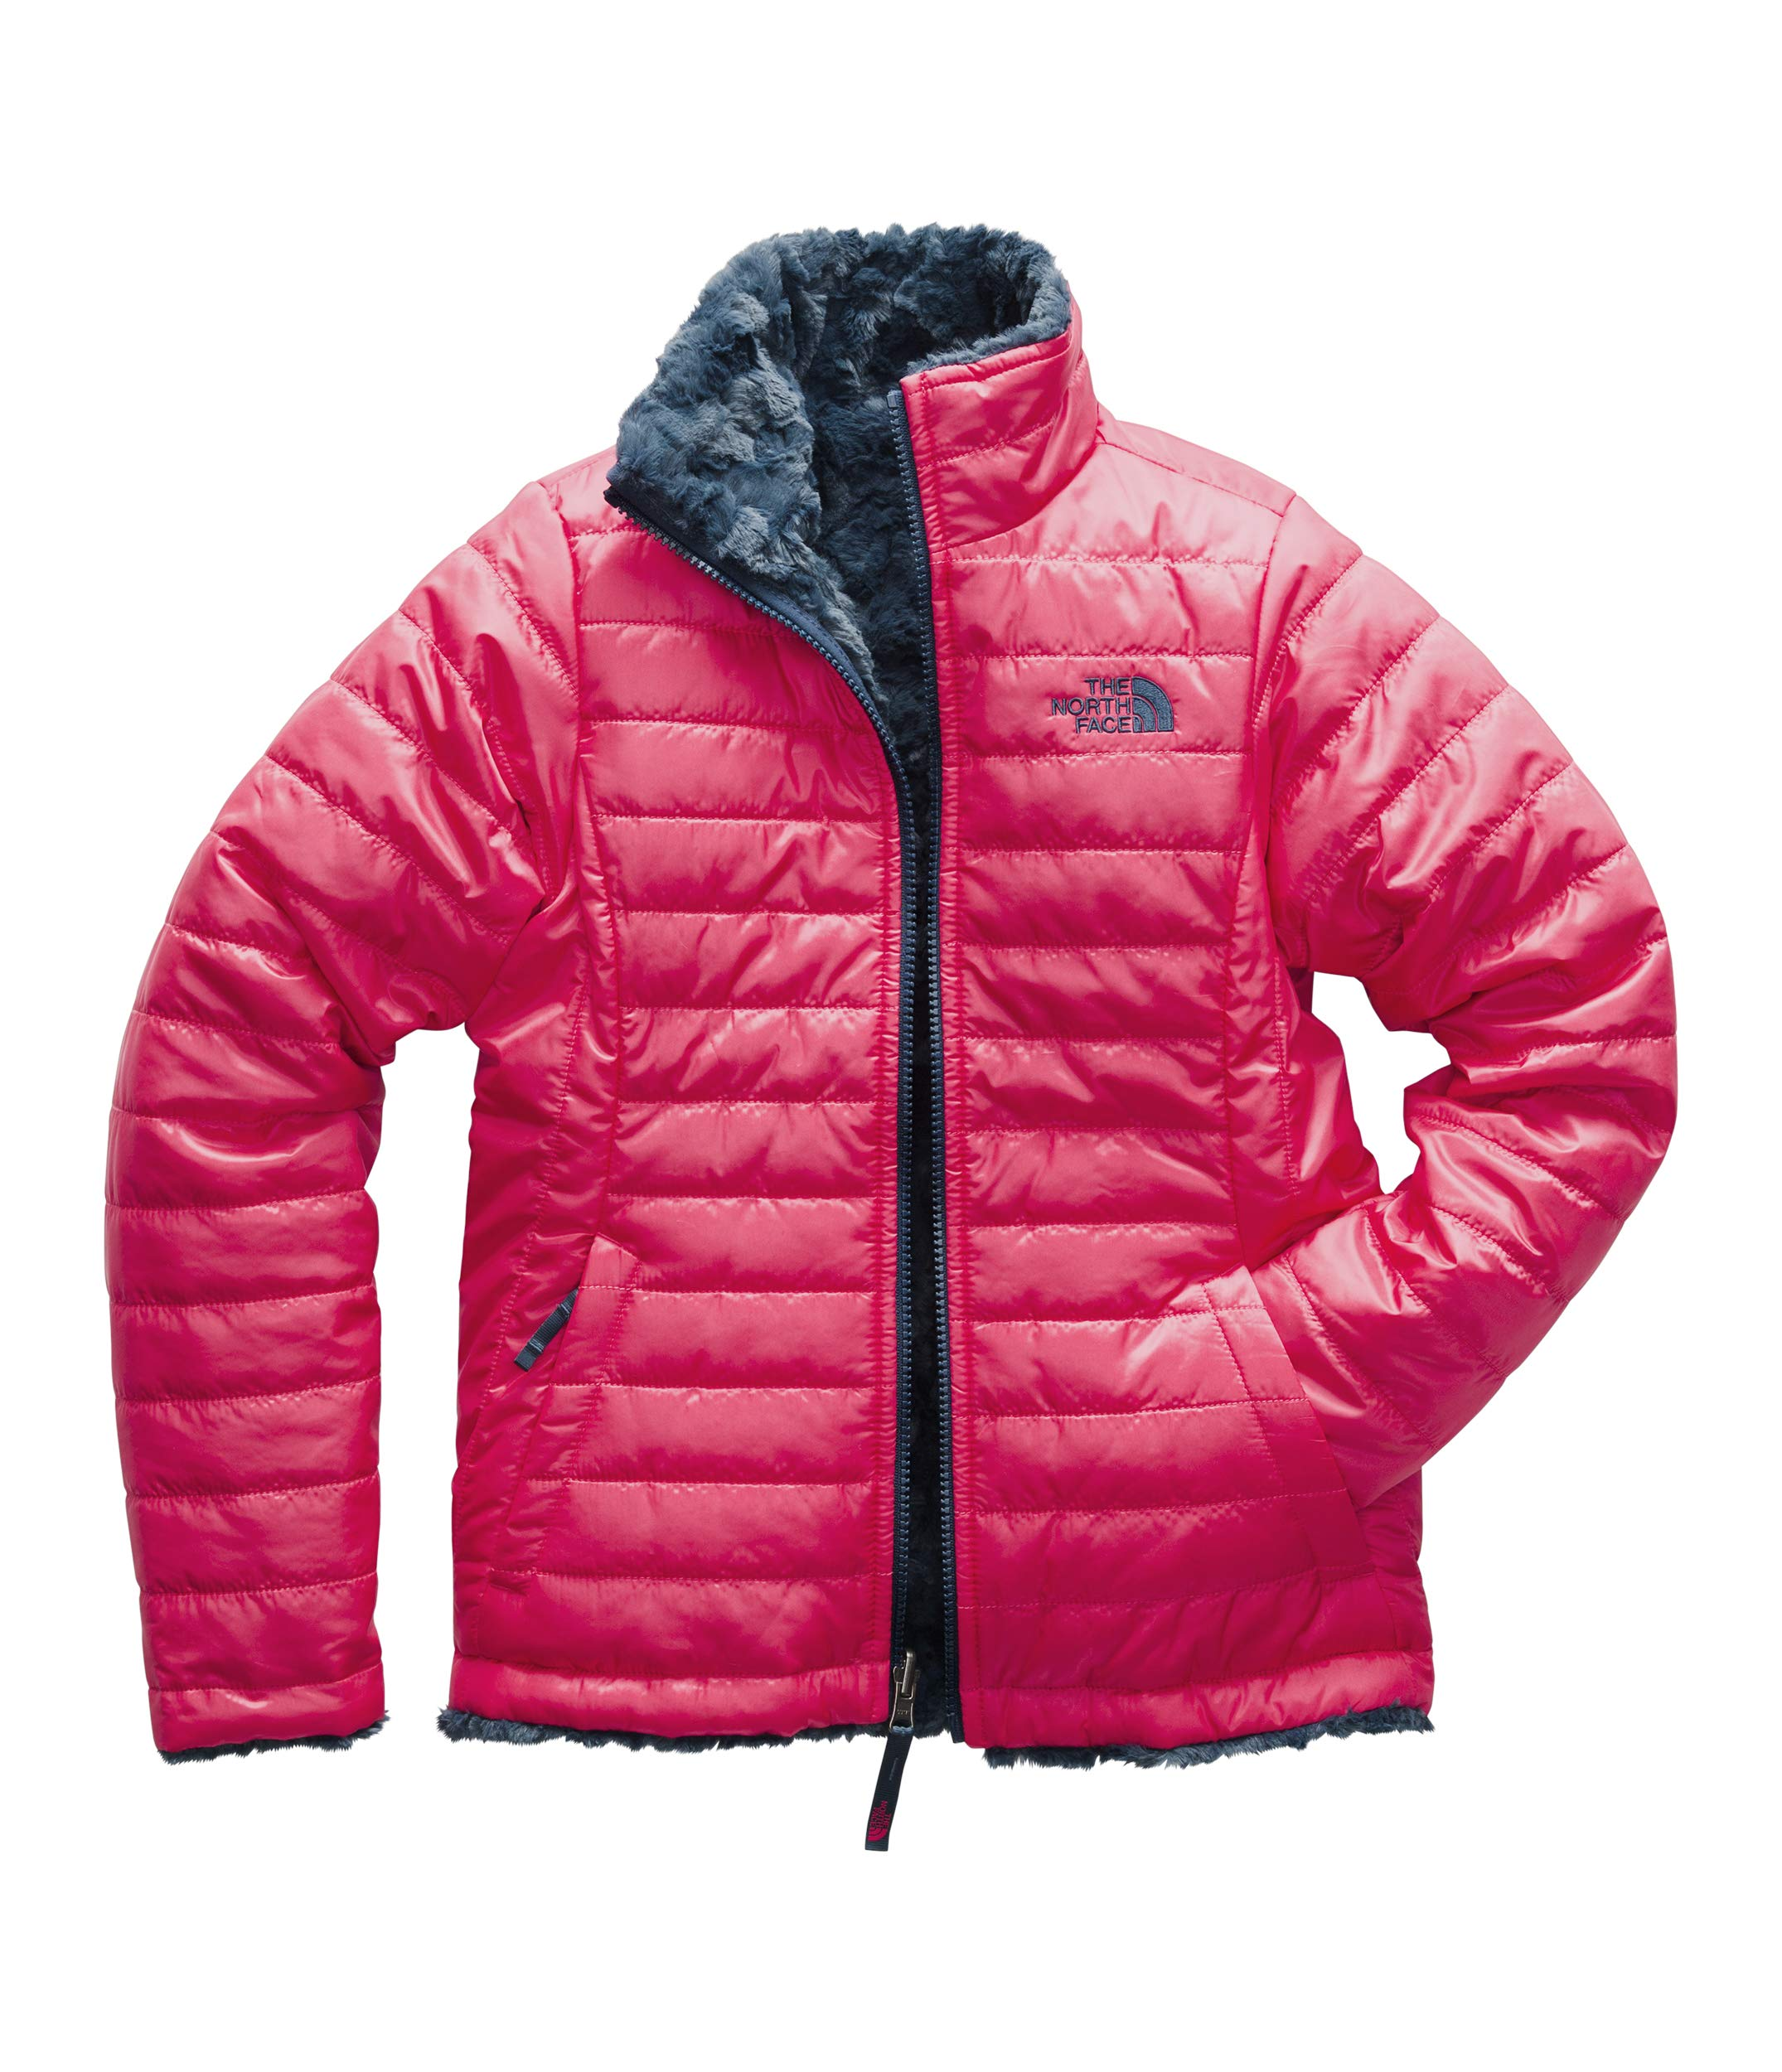 d3c0d57e4c67 Galleon - The North Face NF00CN01 Girls' Reversible Mossbud Swirl ...